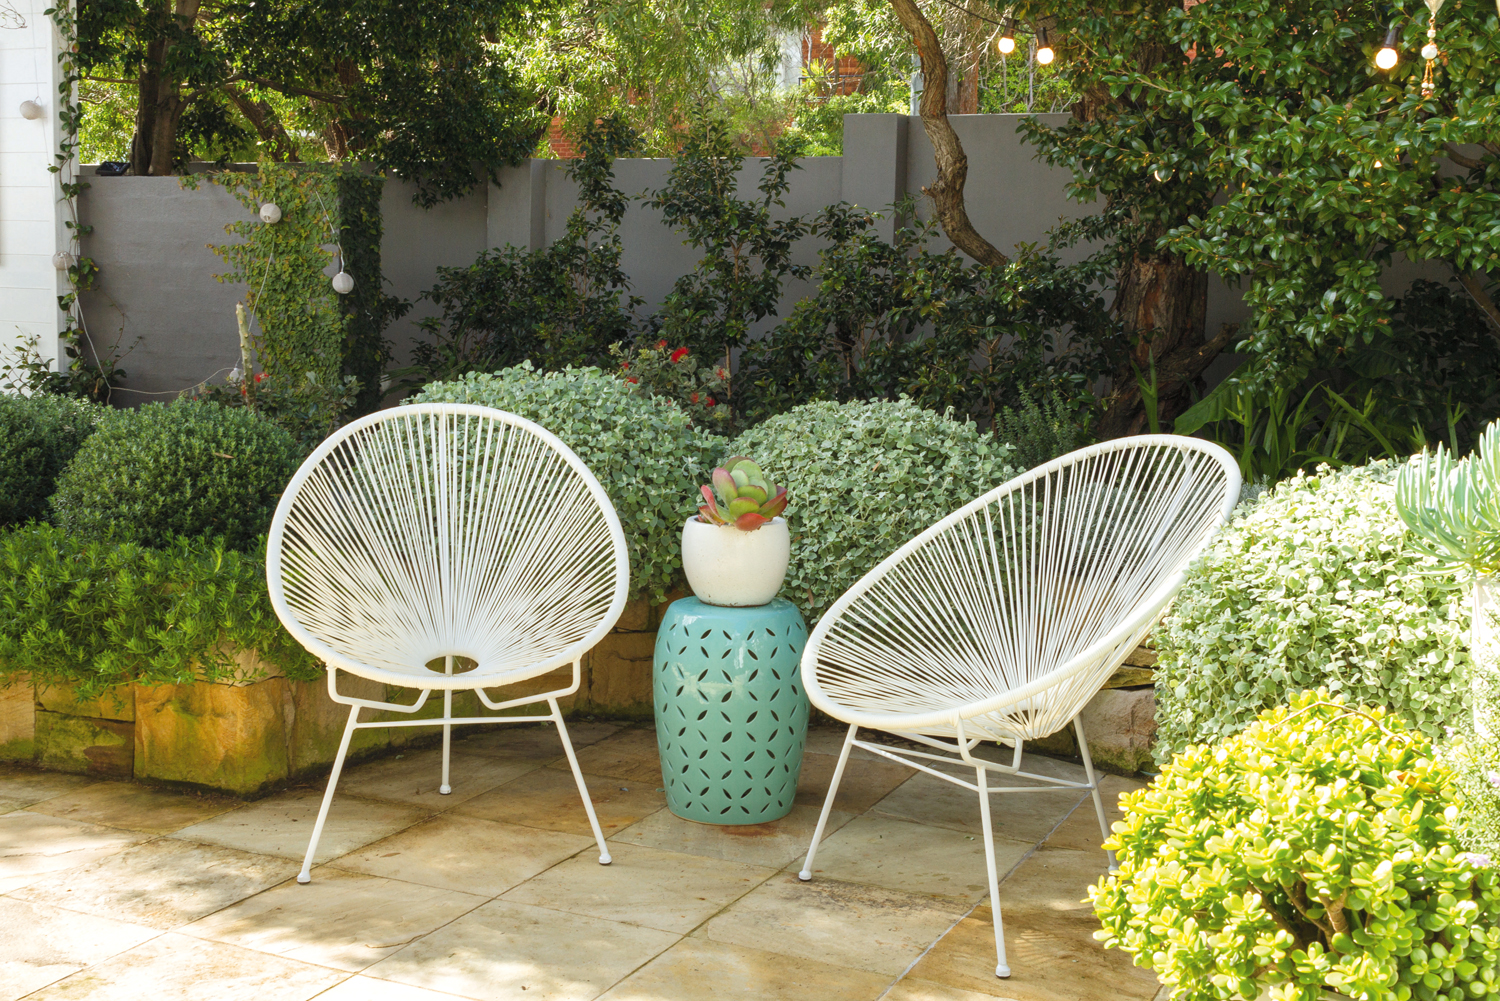 sitedesign_outdoor rooms 12